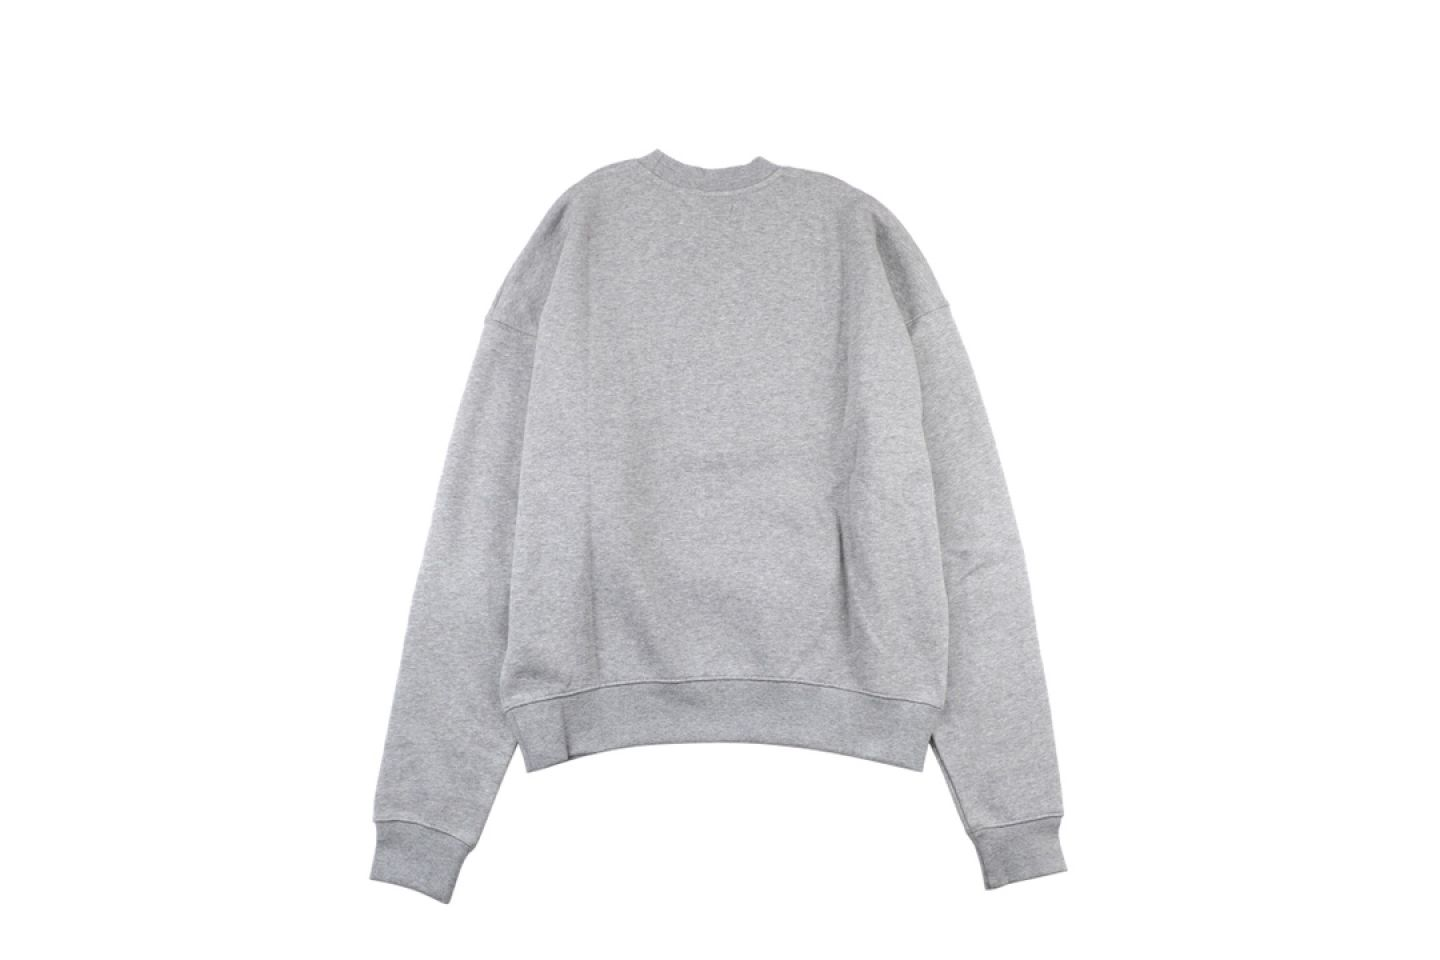 "Shirt Fear Of God Essential double line crew neck sweater ""Grey"" 5 fear_of_god_essential_double_line_crew_neck_sweater_grey_5"